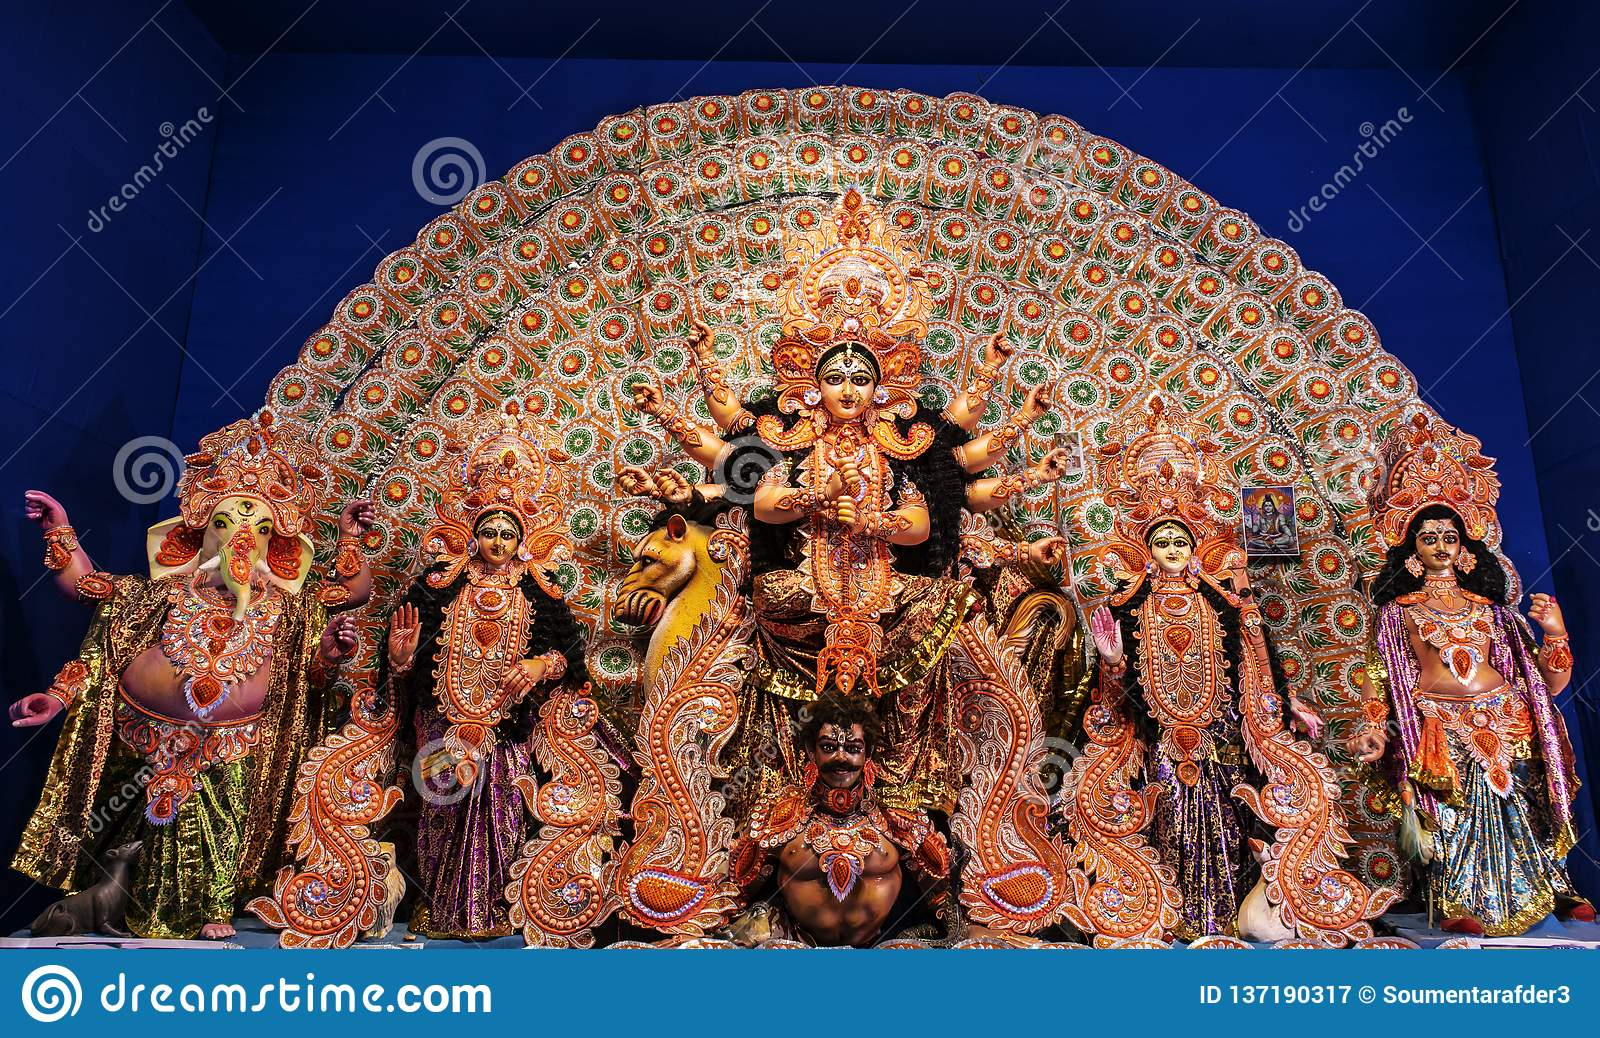 Goddess Durga: Durga Puja is the one of the most famous festival celebrated in West Bengal, Assam, Tripura.